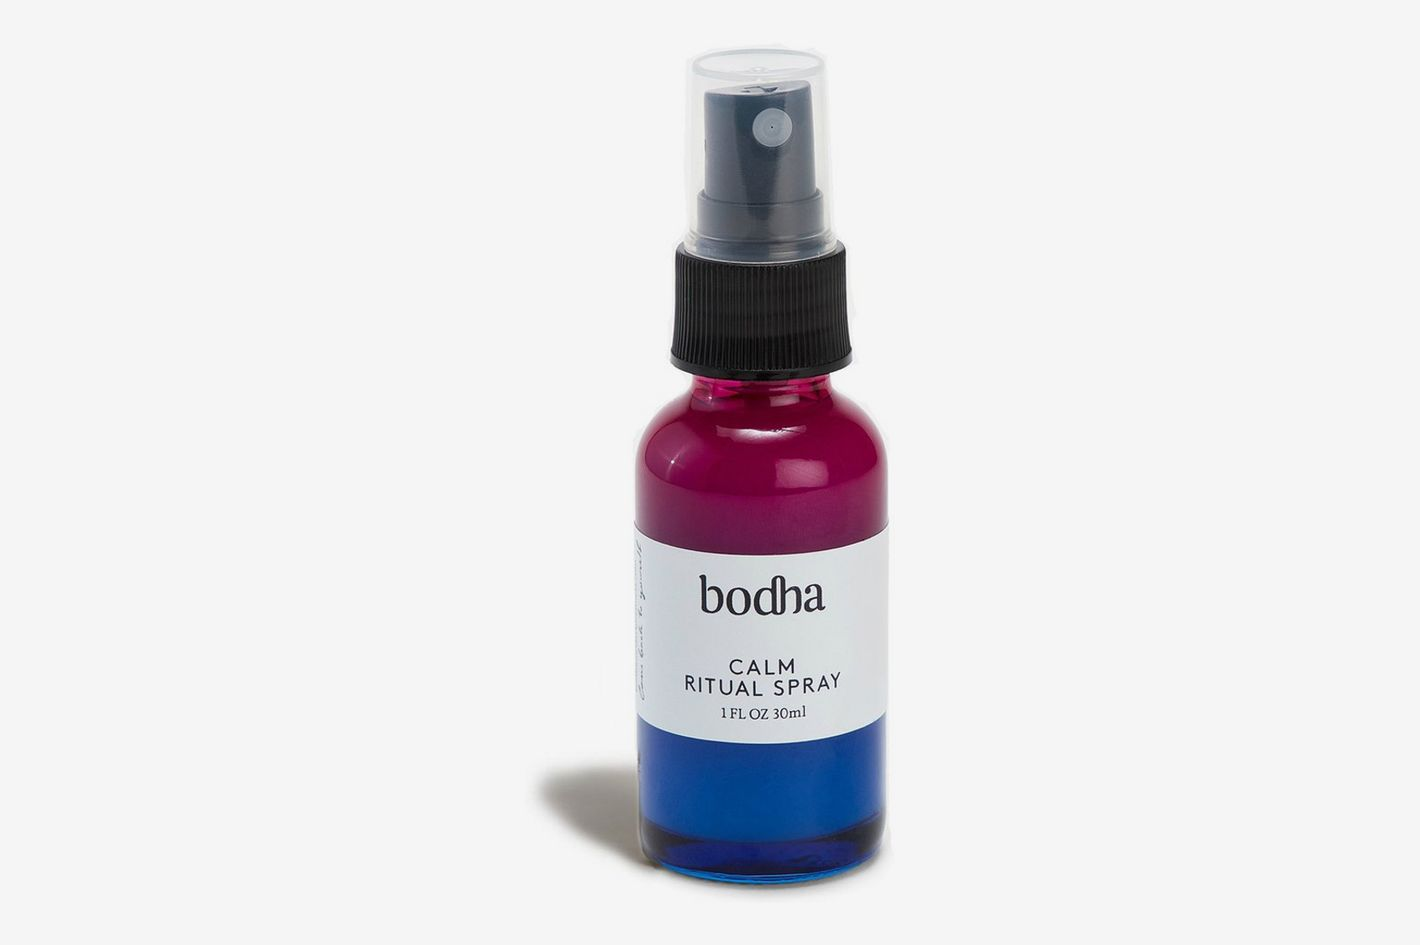 Bodha Calm Ritual Spray